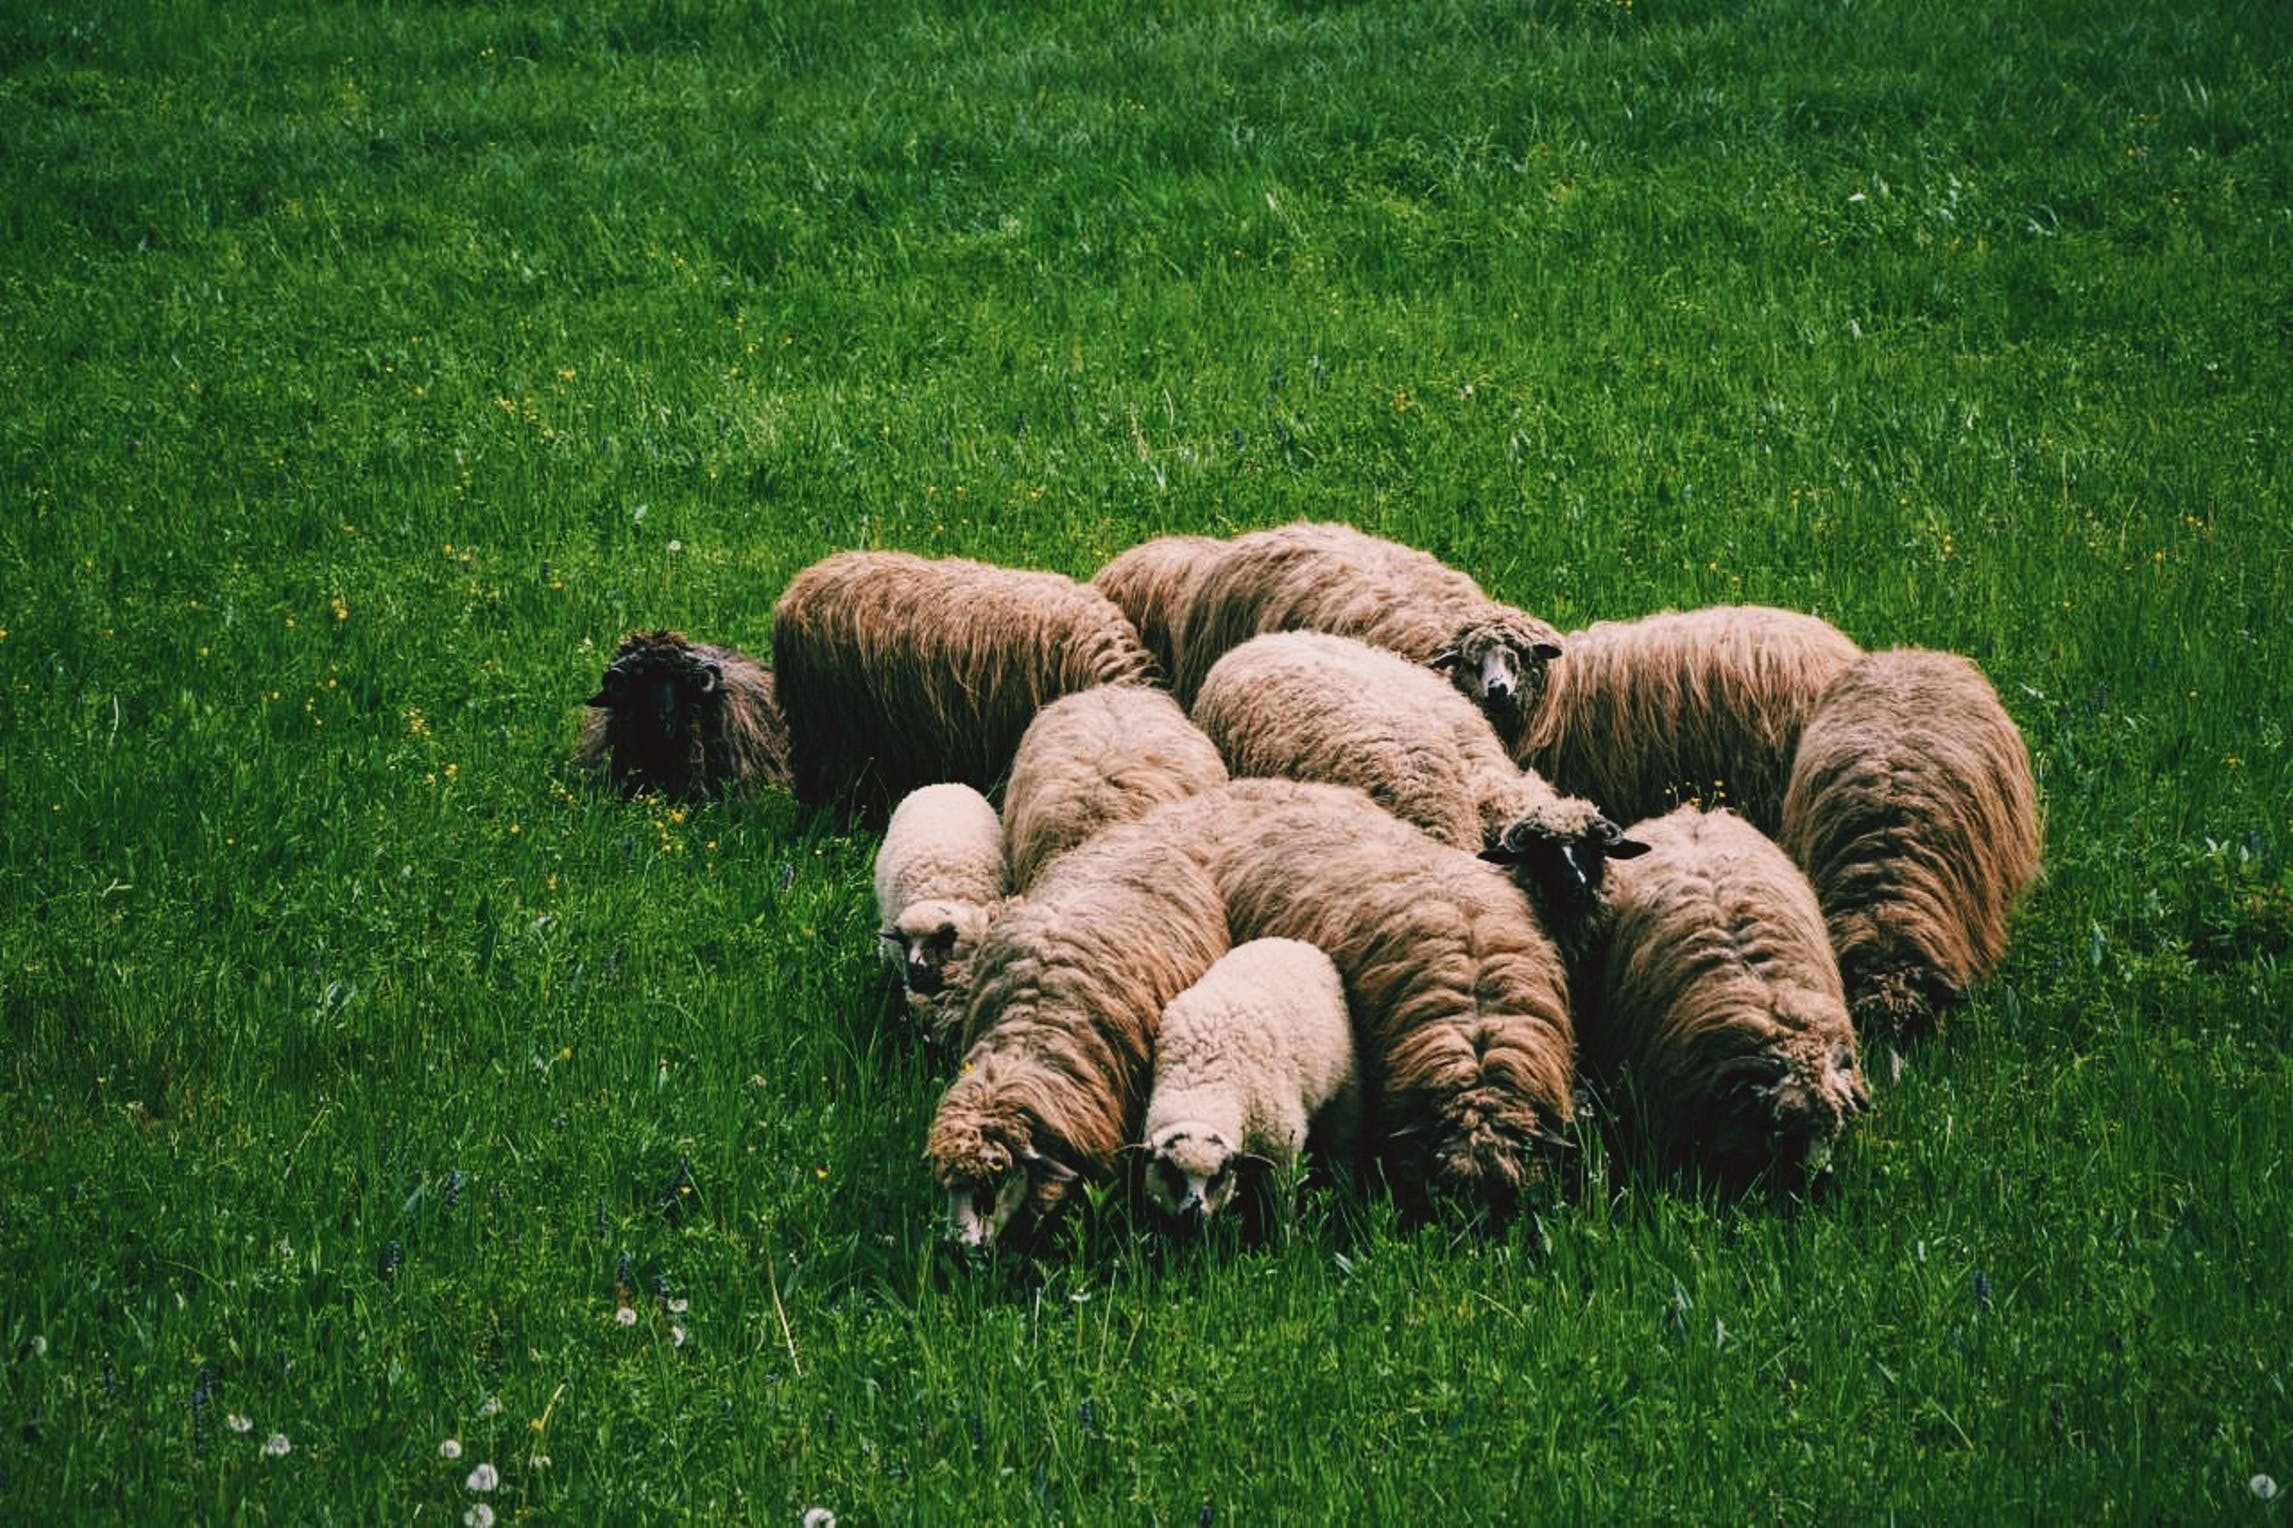 Flock of Sheep on Green Grass on Field at Daytime